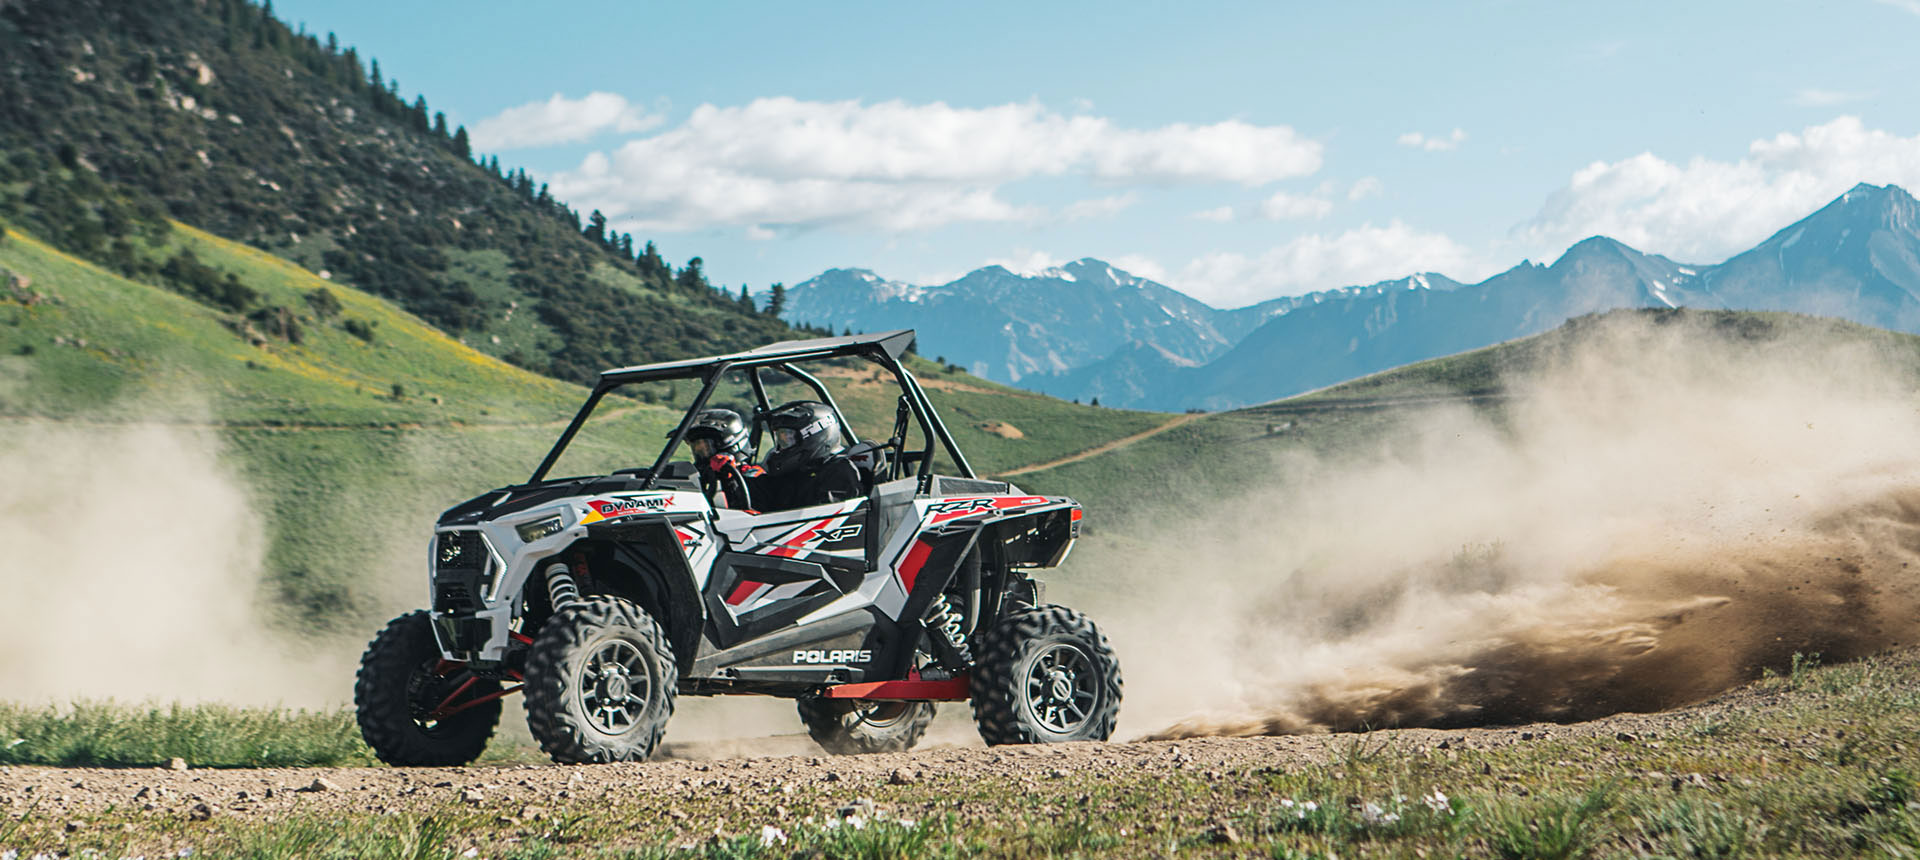 2019 Polaris RZR XP 1000 in Paso Robles, California